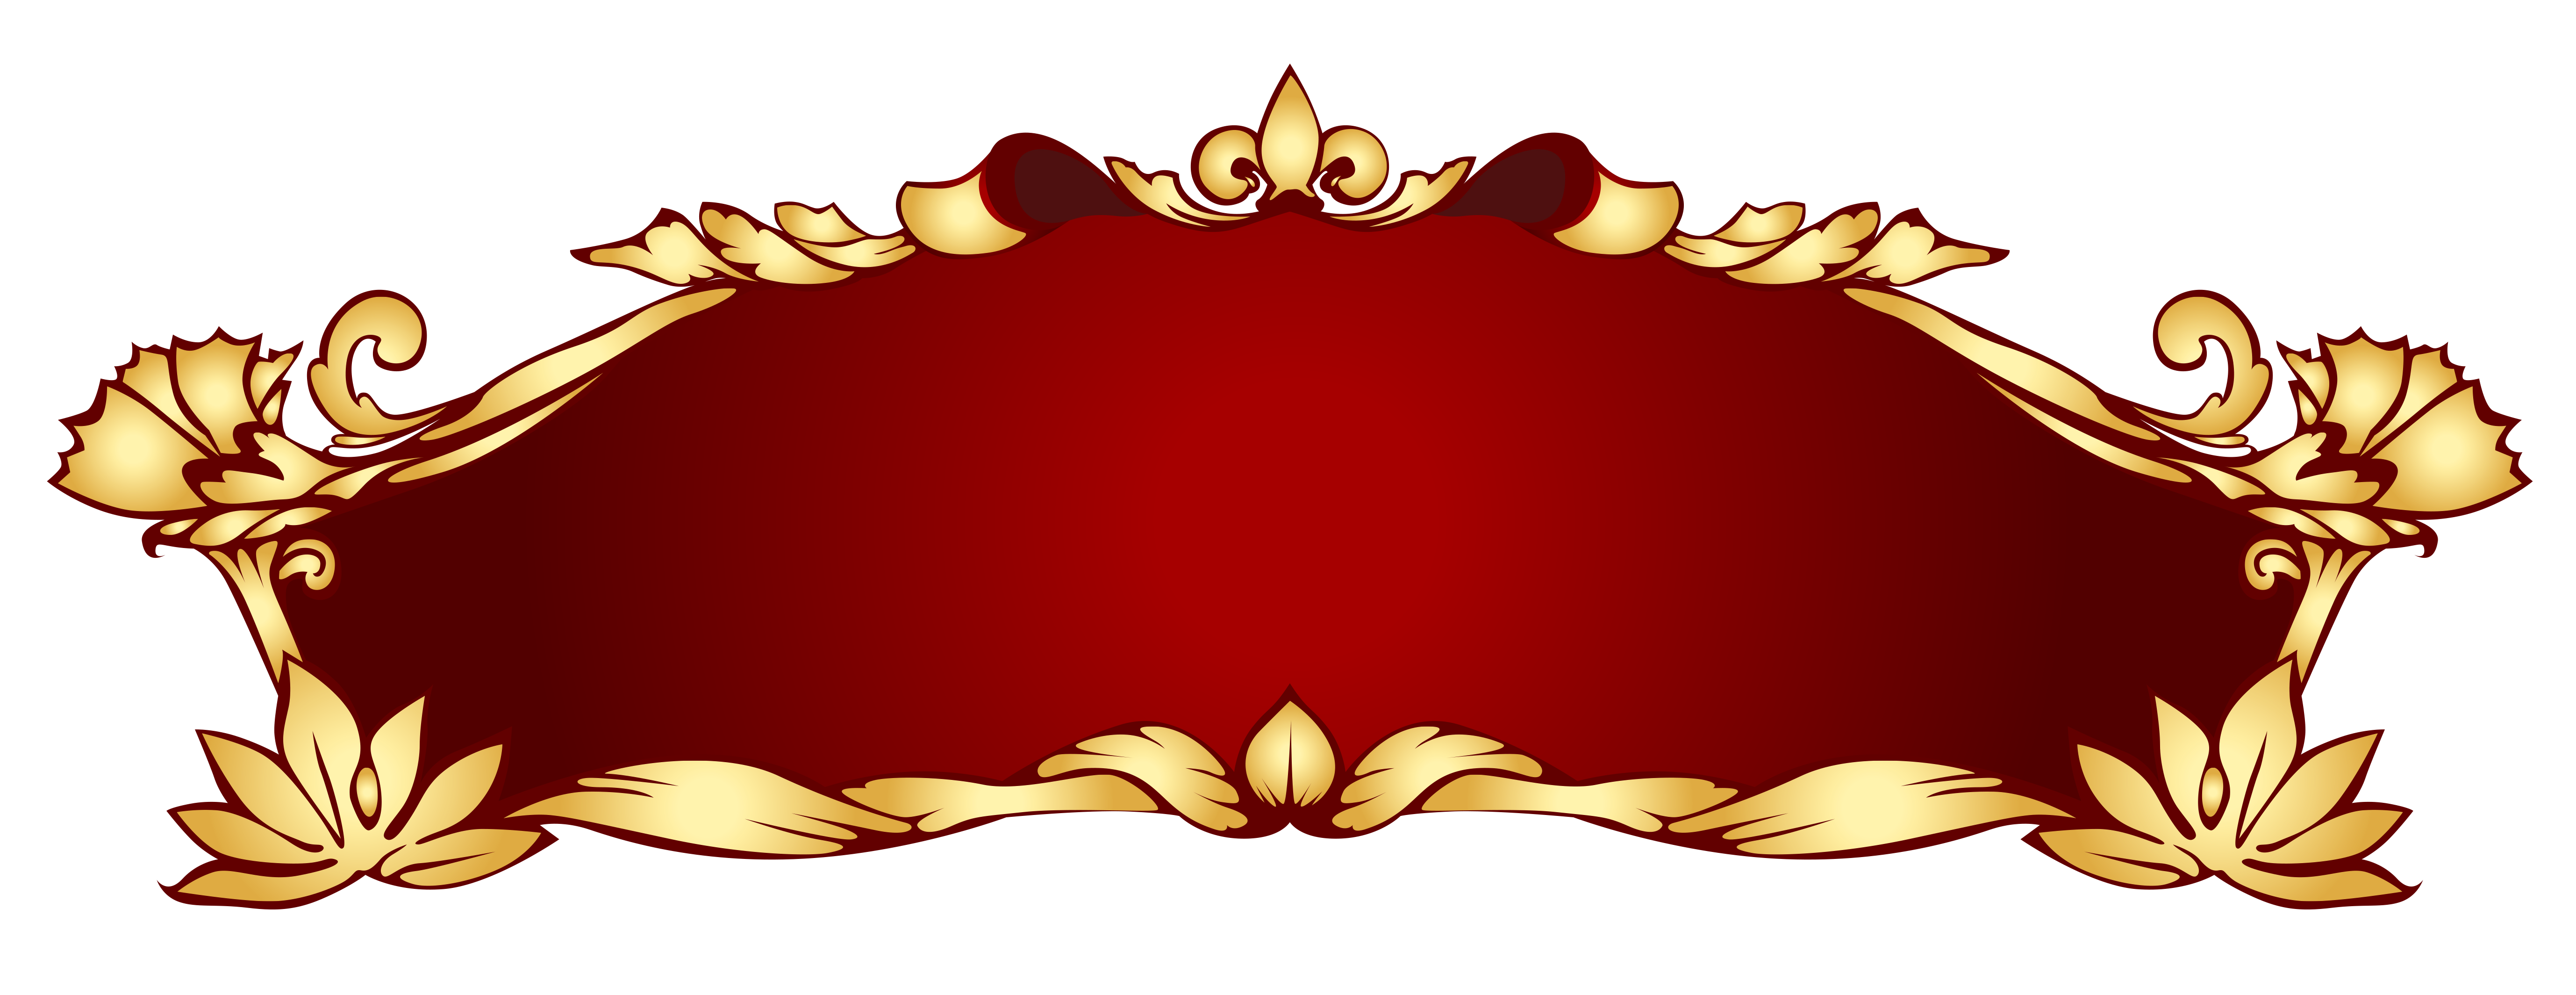 Banner png images. Transparent red deco picture